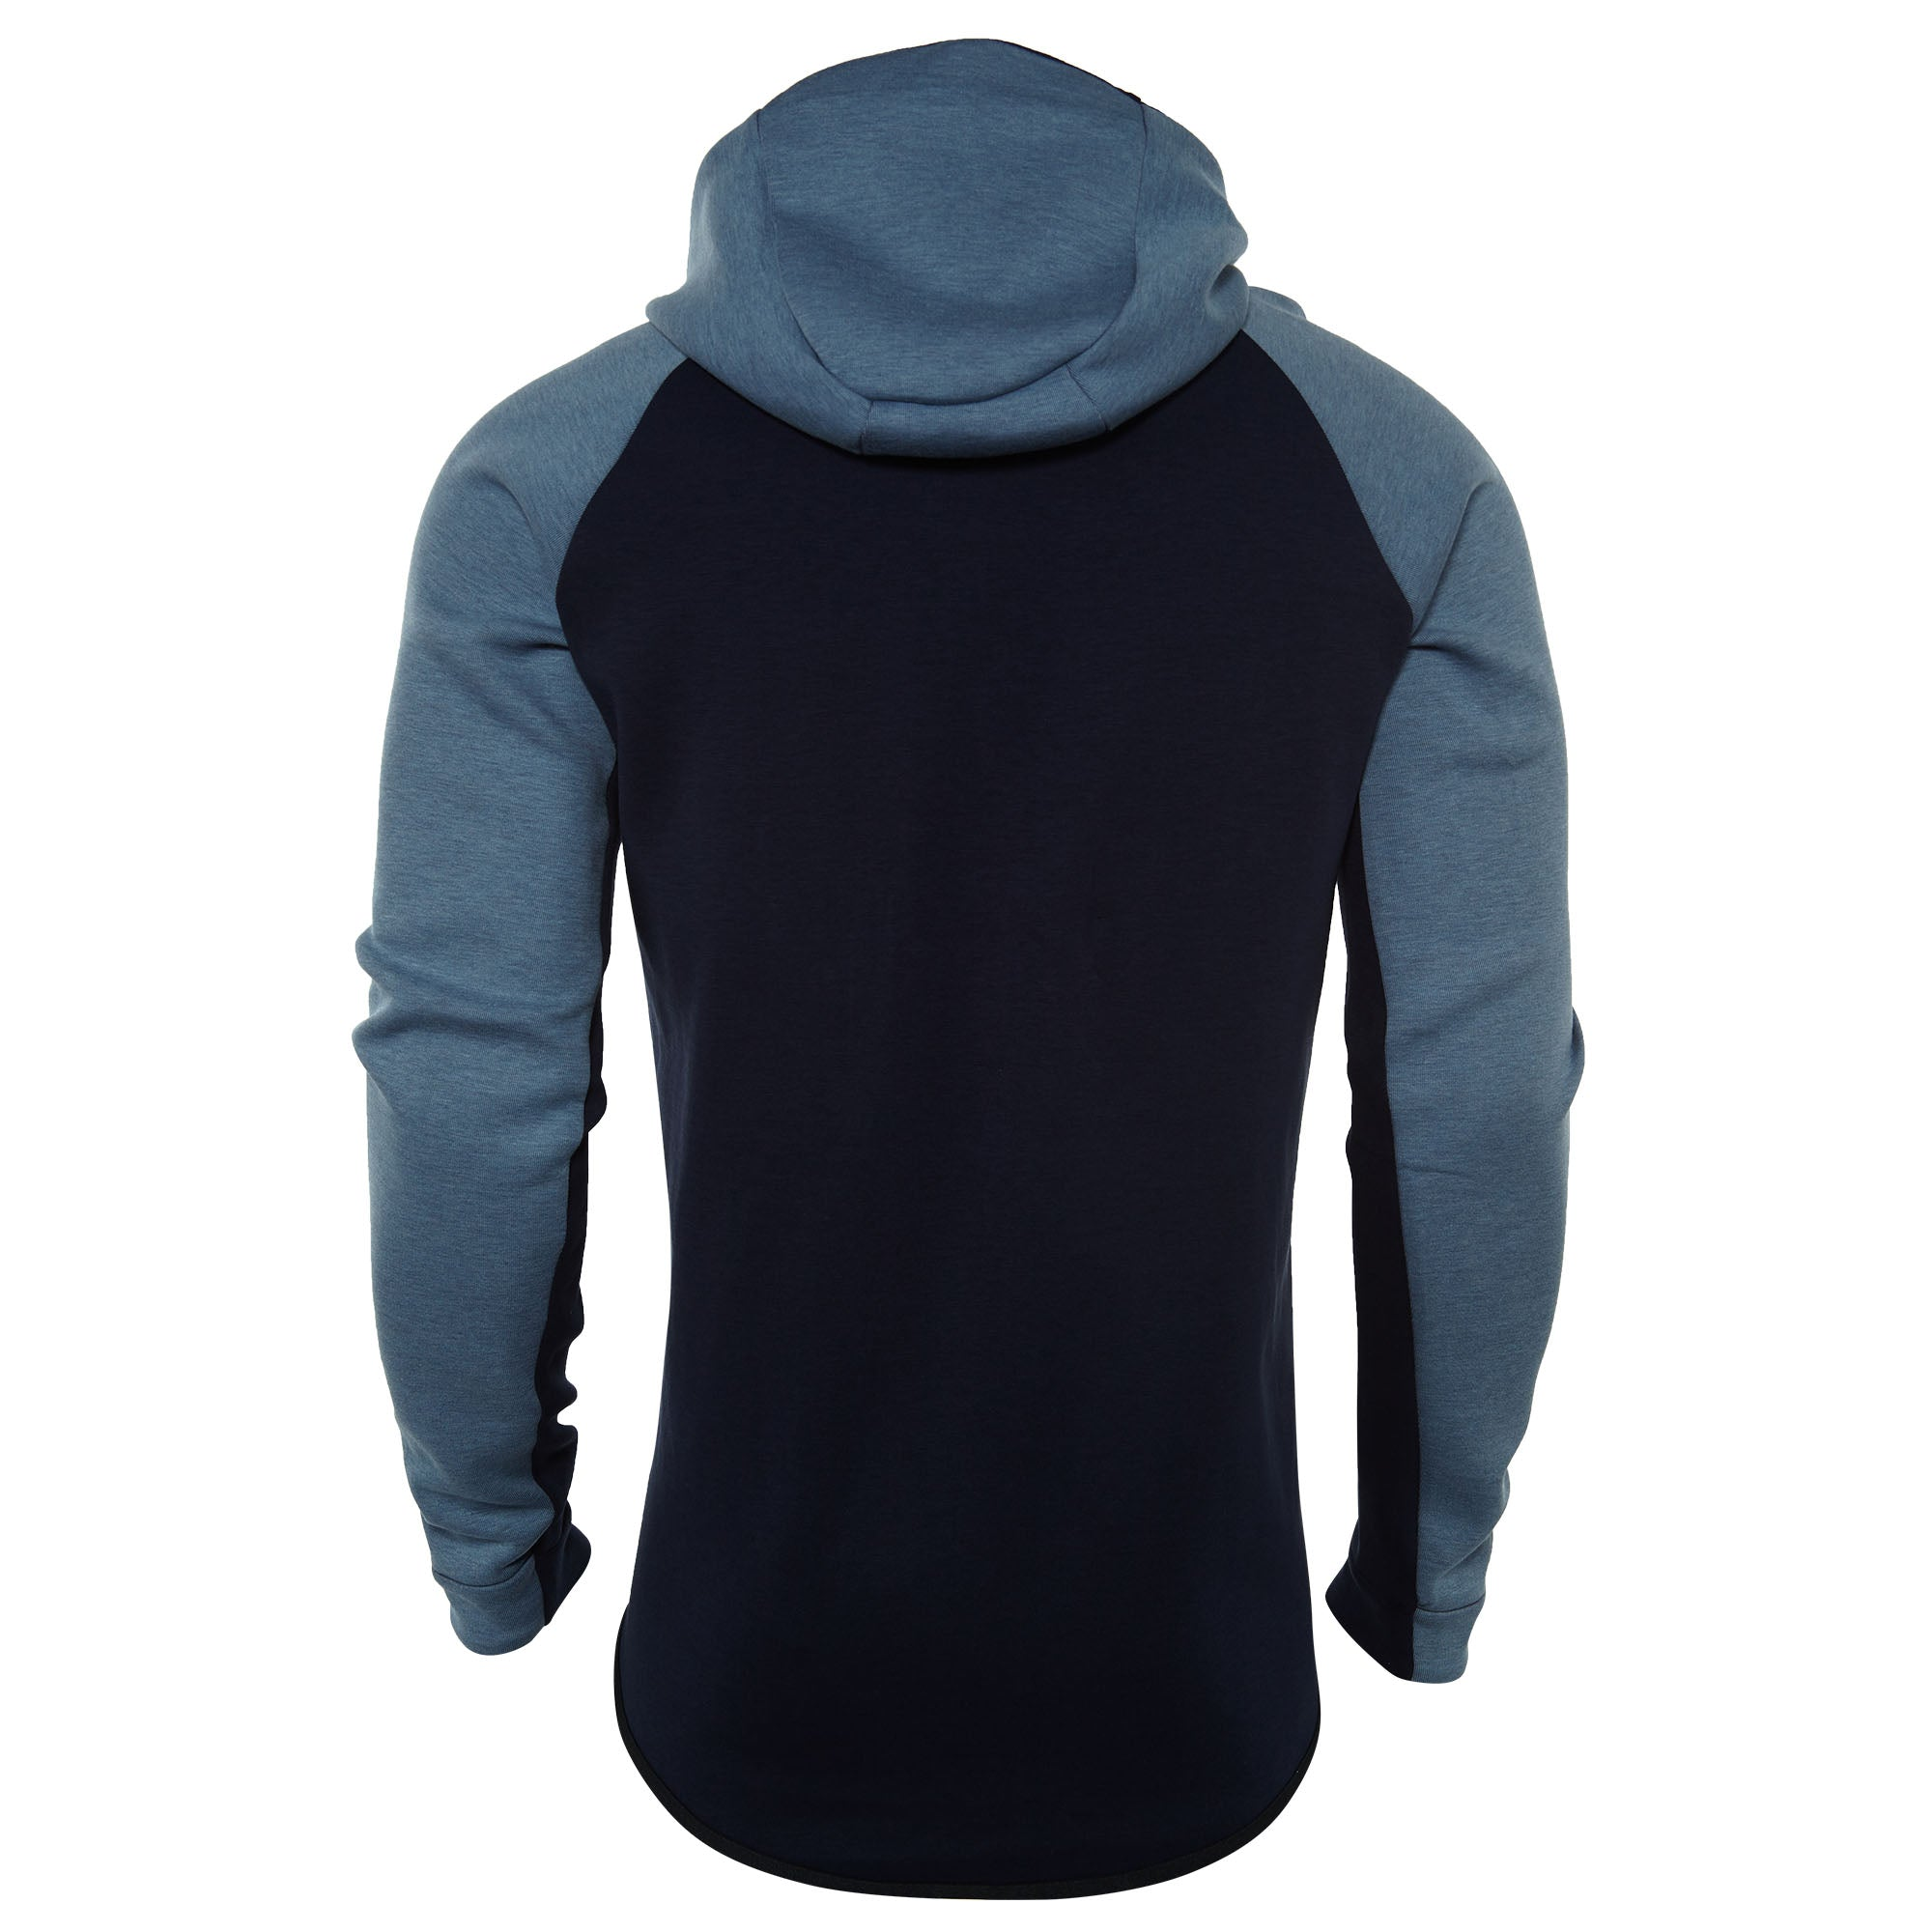 c2f6592123c4 Nike Sportswear Tech Fleece Windrunner Full-zip Hoodie Mens Style   88